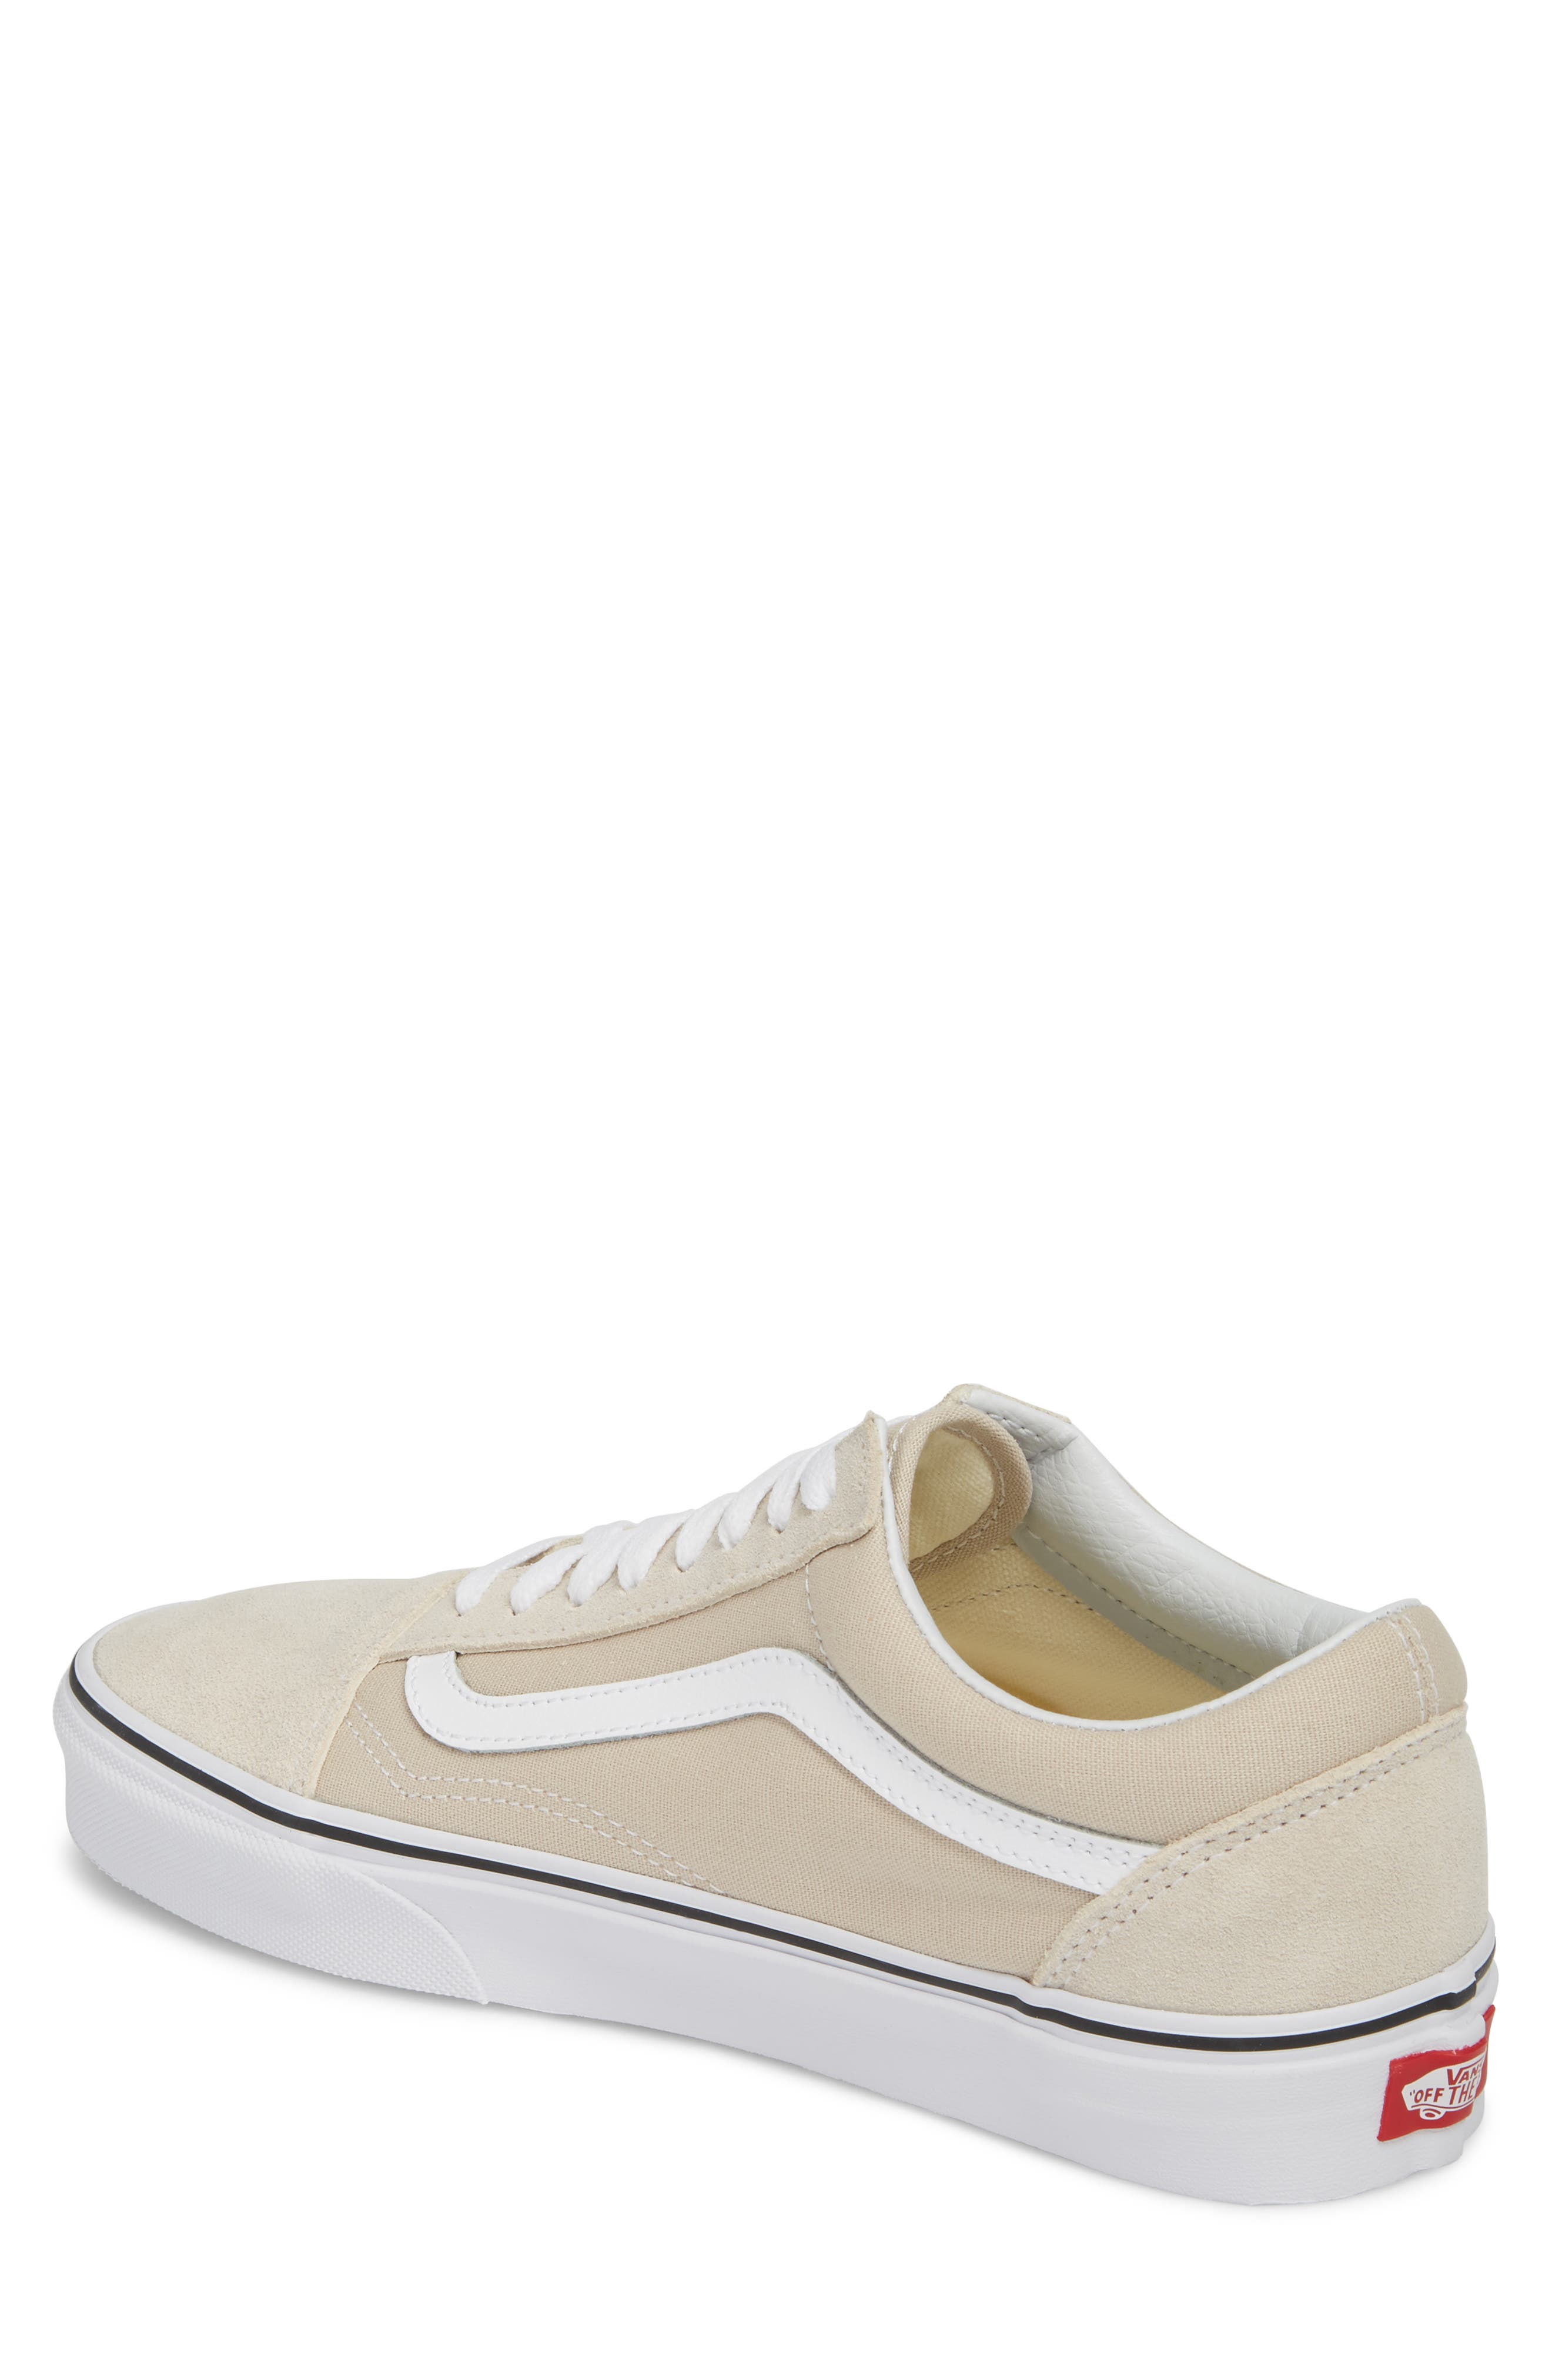 Old Skool Low Top Sneaker,                             Alternate thumbnail 2, color,                             Silver Lining/ White Leather